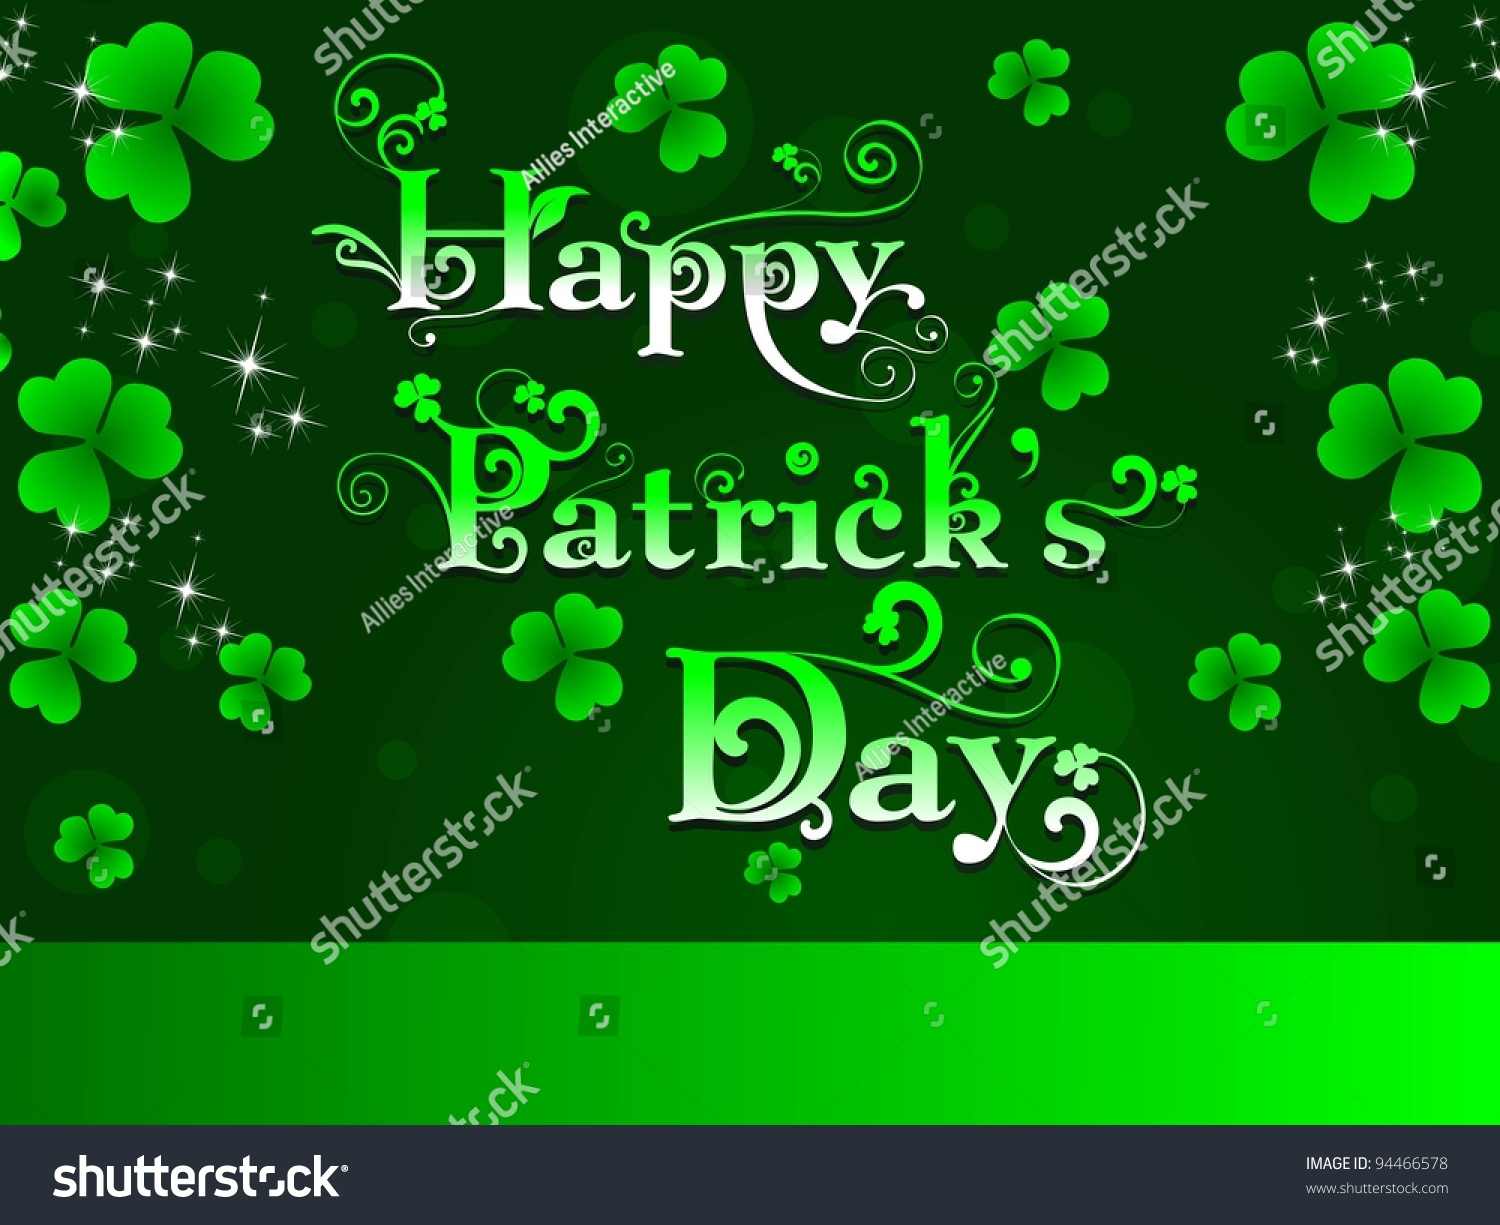 St Patrick Day Greeting Shamrocks Decorative Text Stock Vector